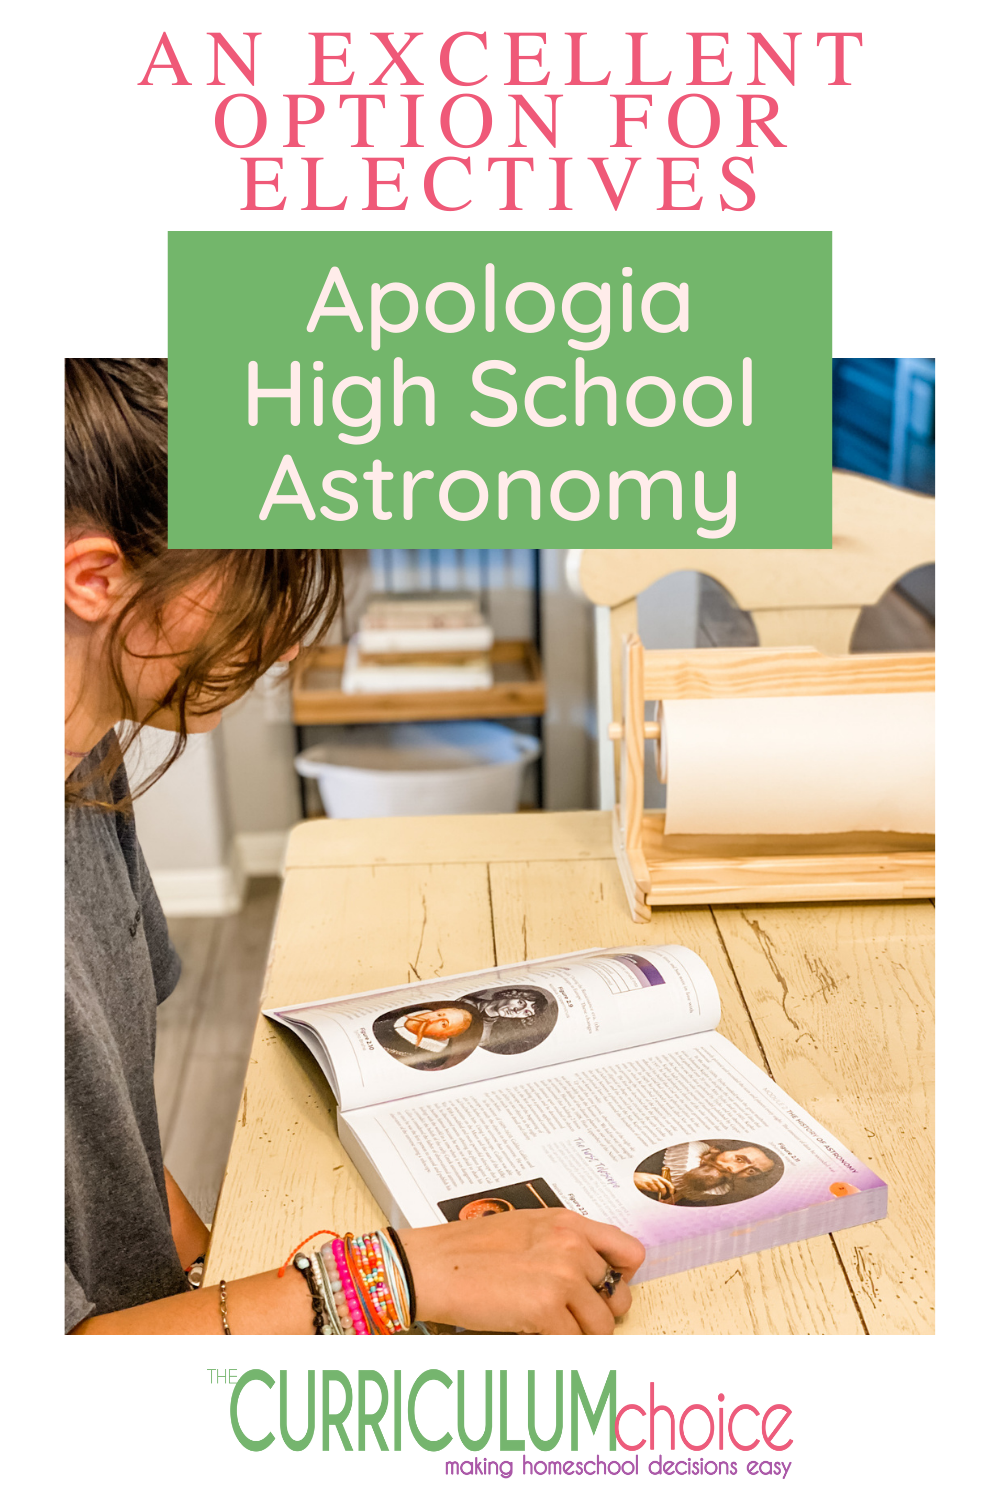 If your Christian teen need's an elective, check out the Apologia High School Astronomy Course. It's not your typical high school course! #highschoolcurriculum #thecurriculumchoice #homeschool #homeschoolelectives #homeschoolhighschool